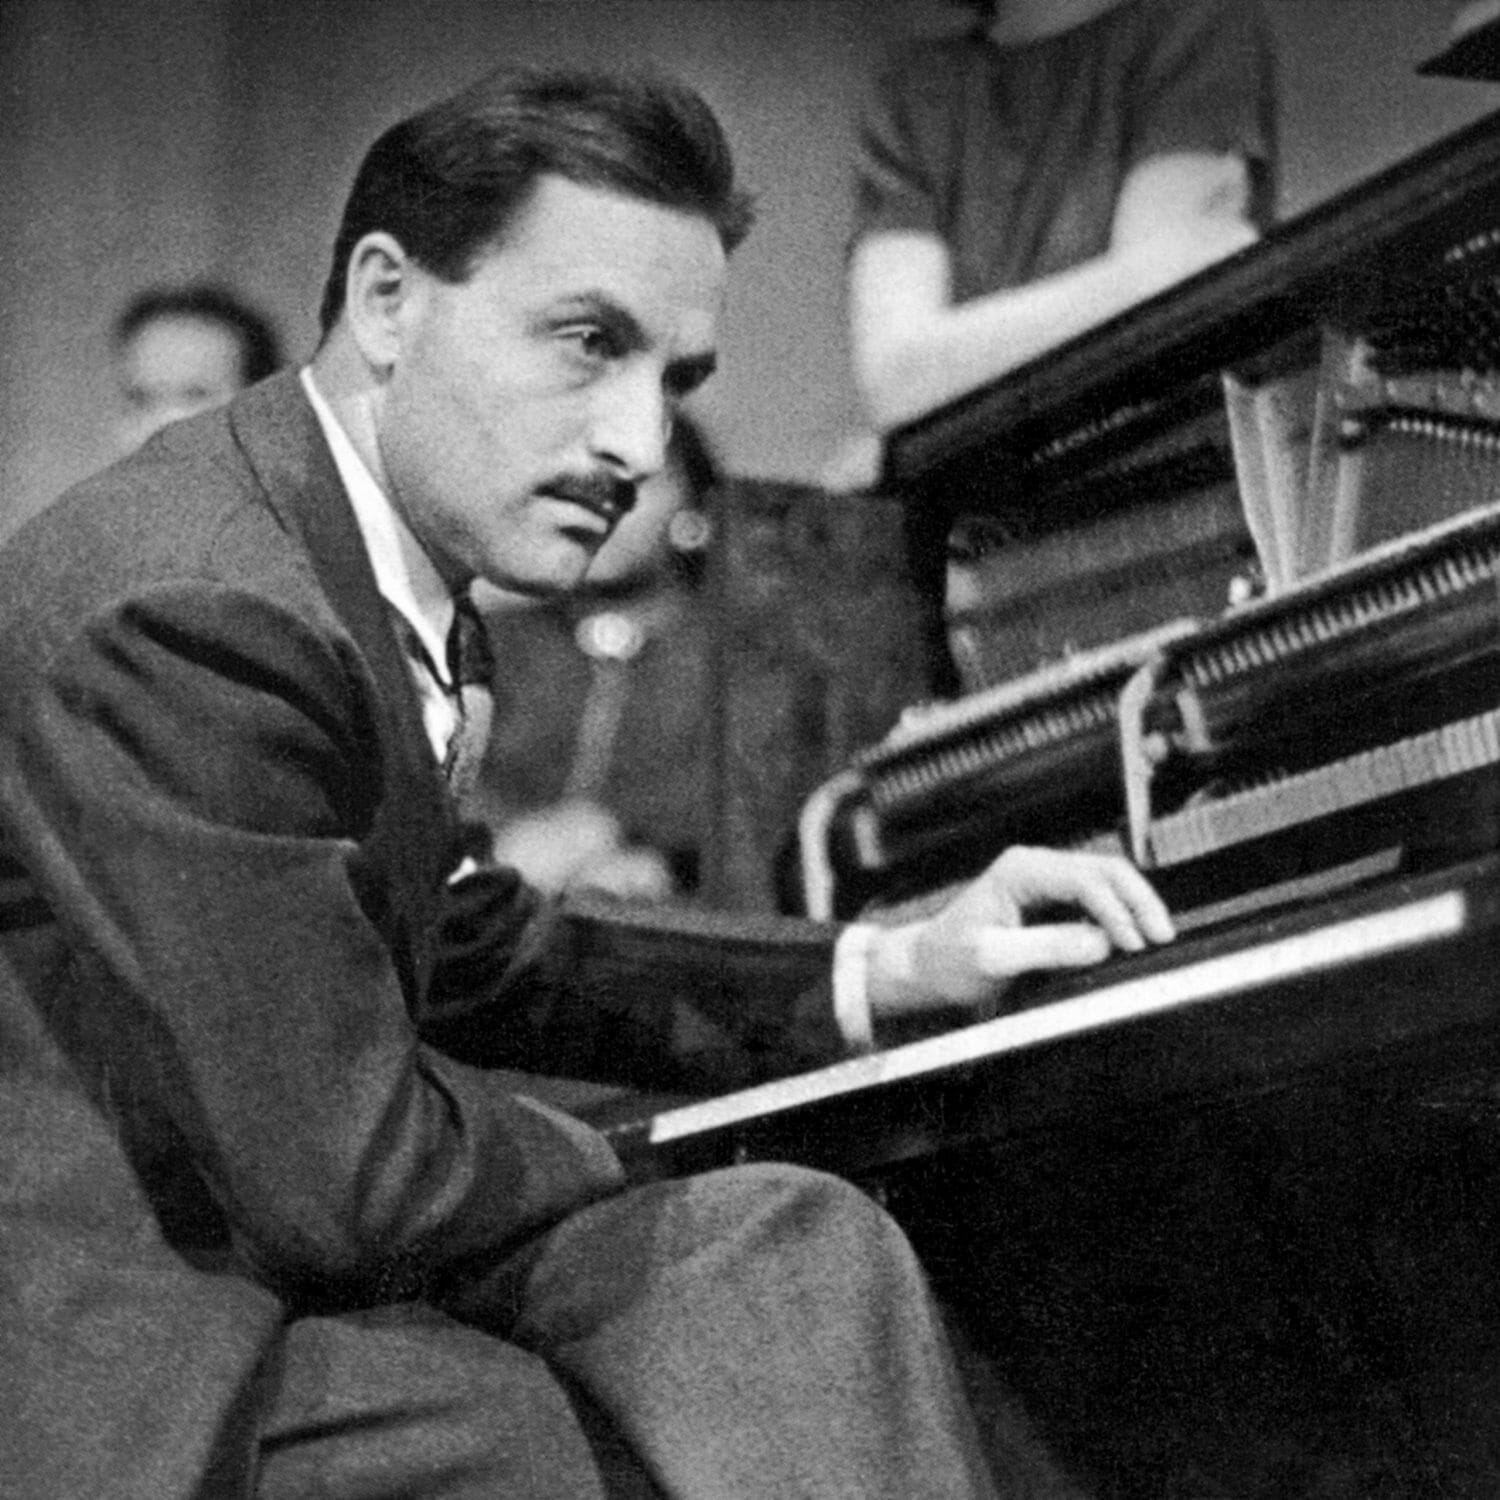 Young moustached man at a piano